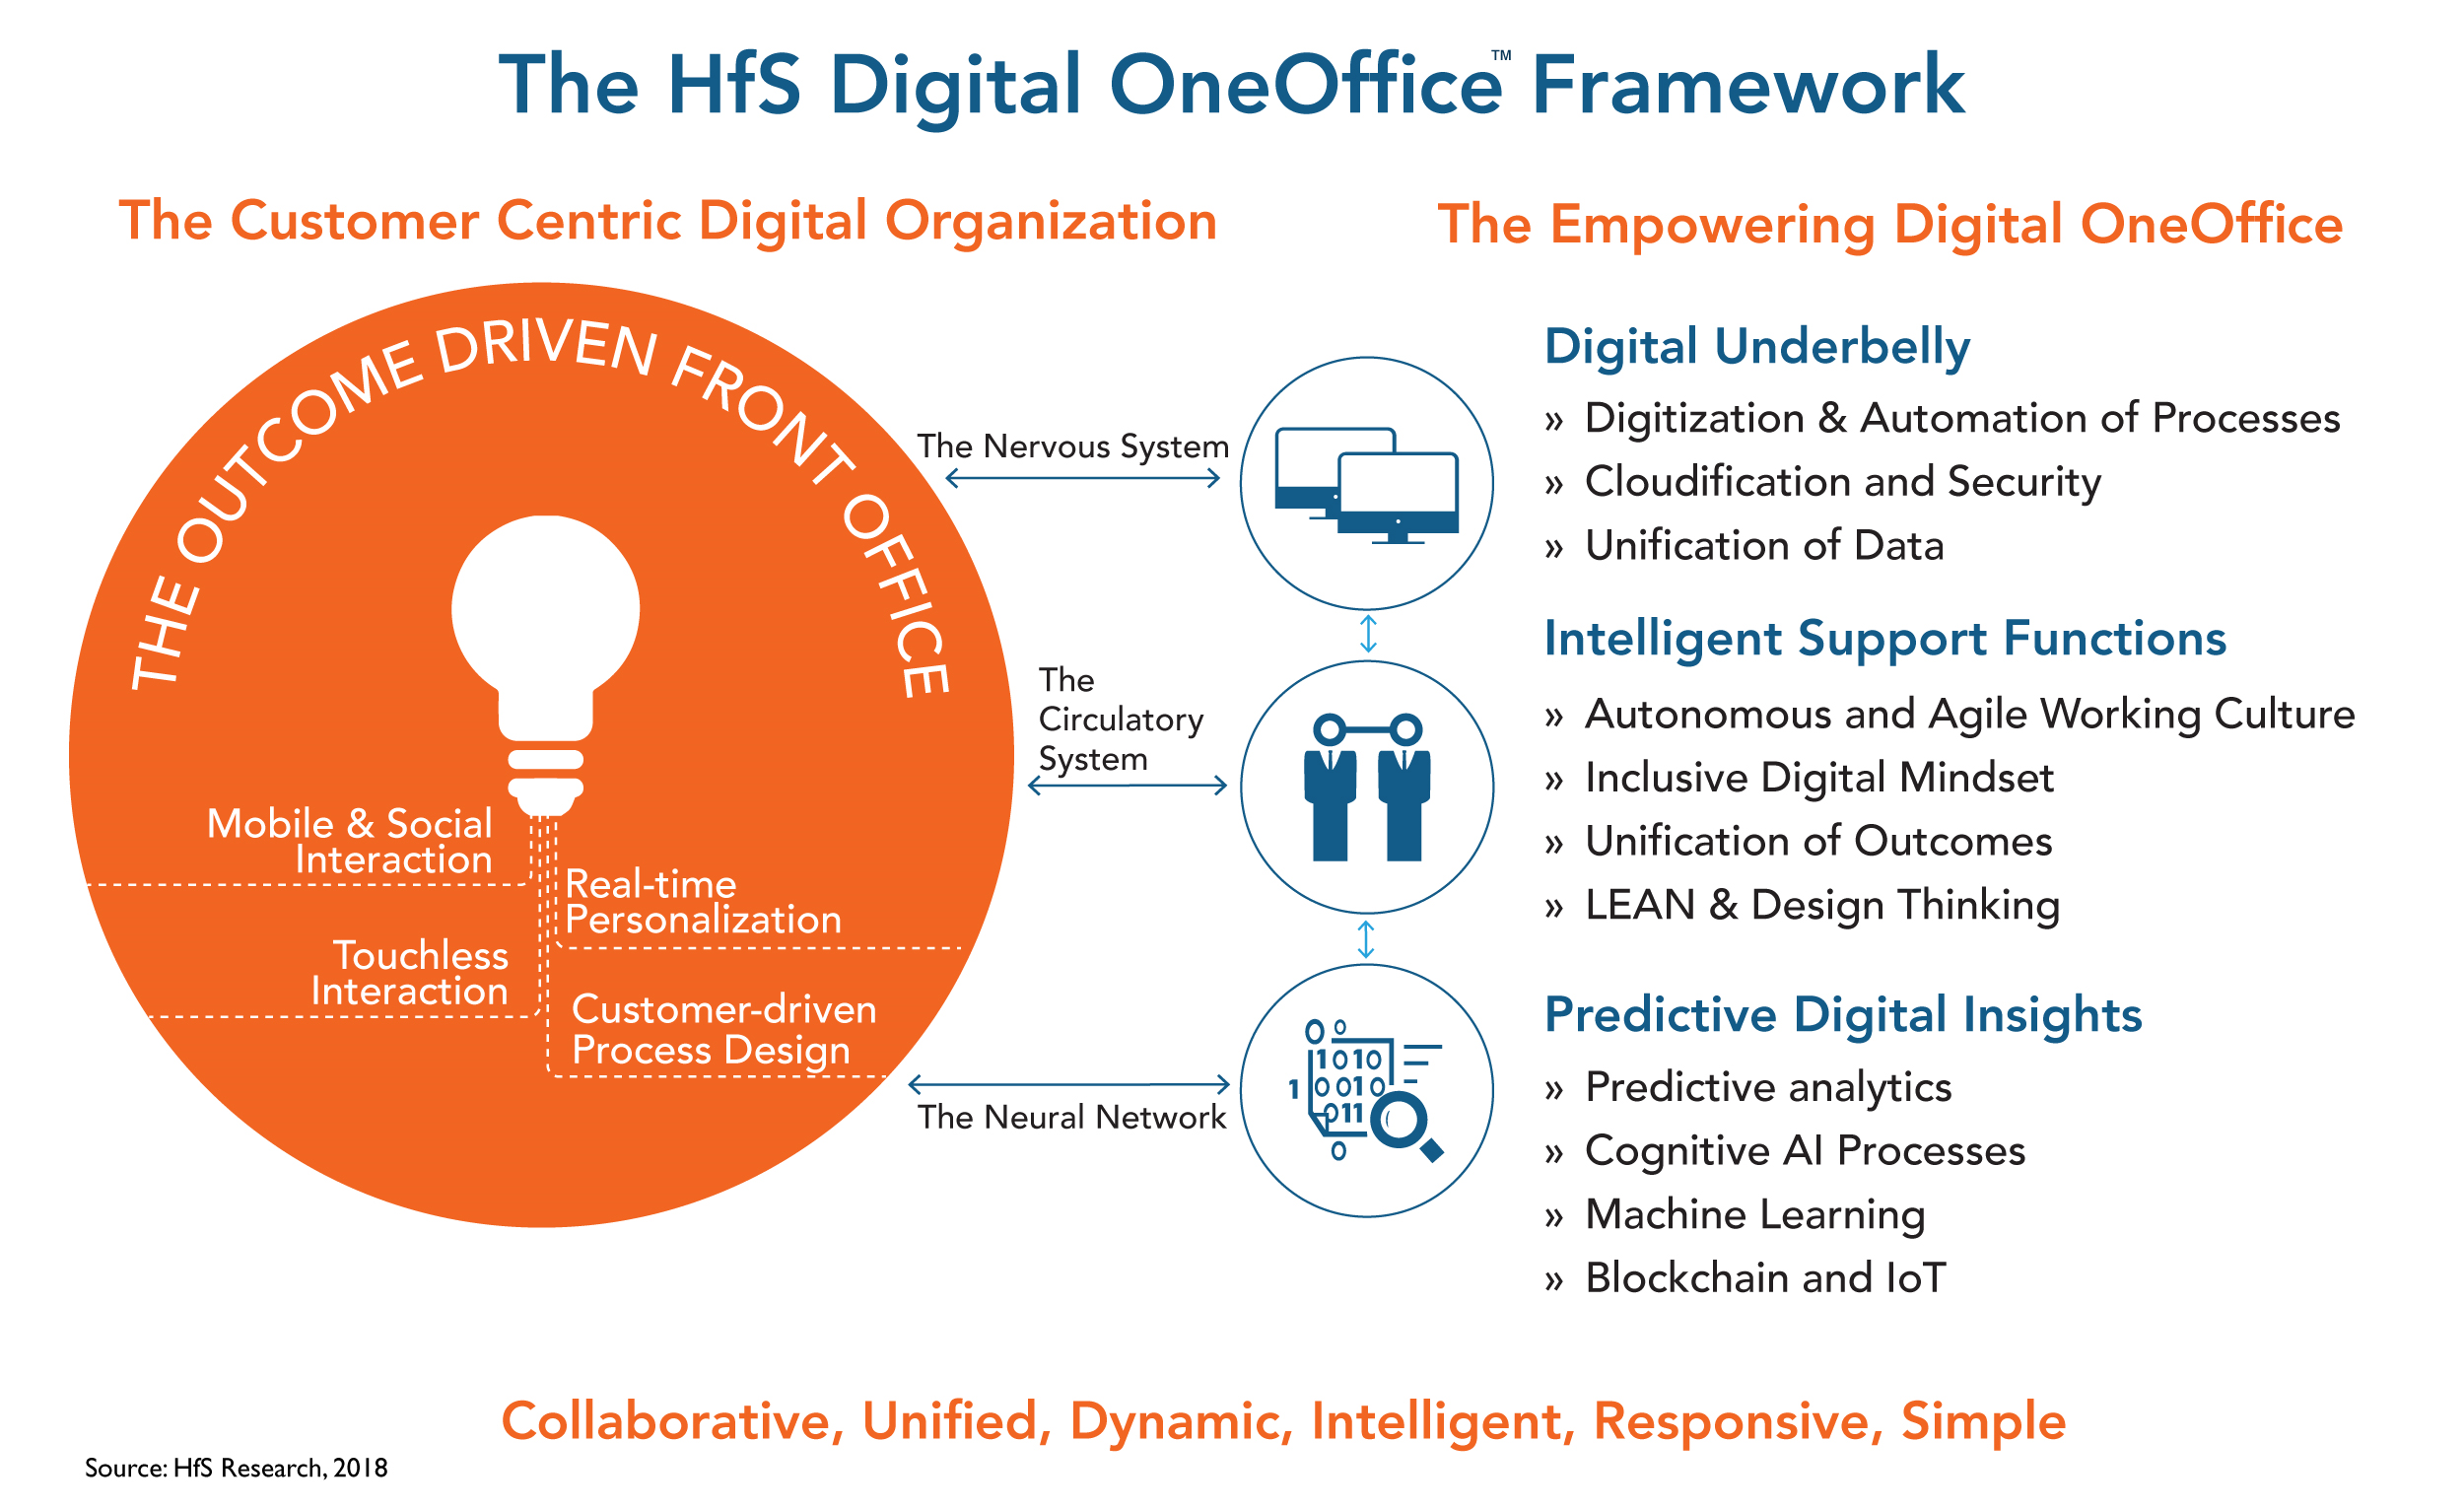 The why, the what and the how of the HfS Digital OneOffice